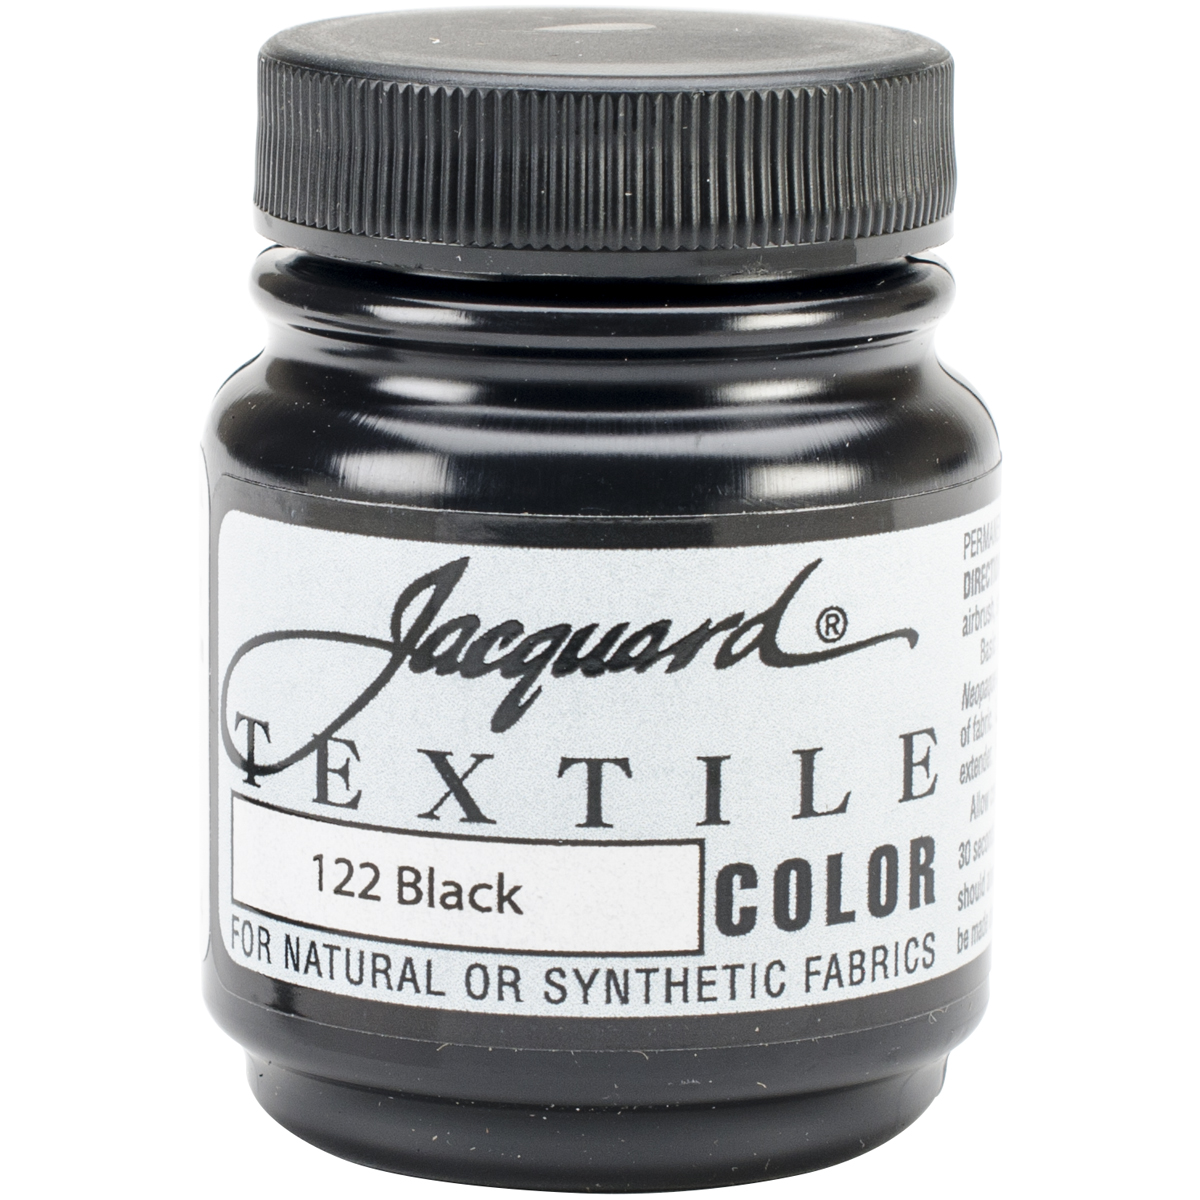 Jacquard Textile Color Fabric Paint 2.25oz-Black